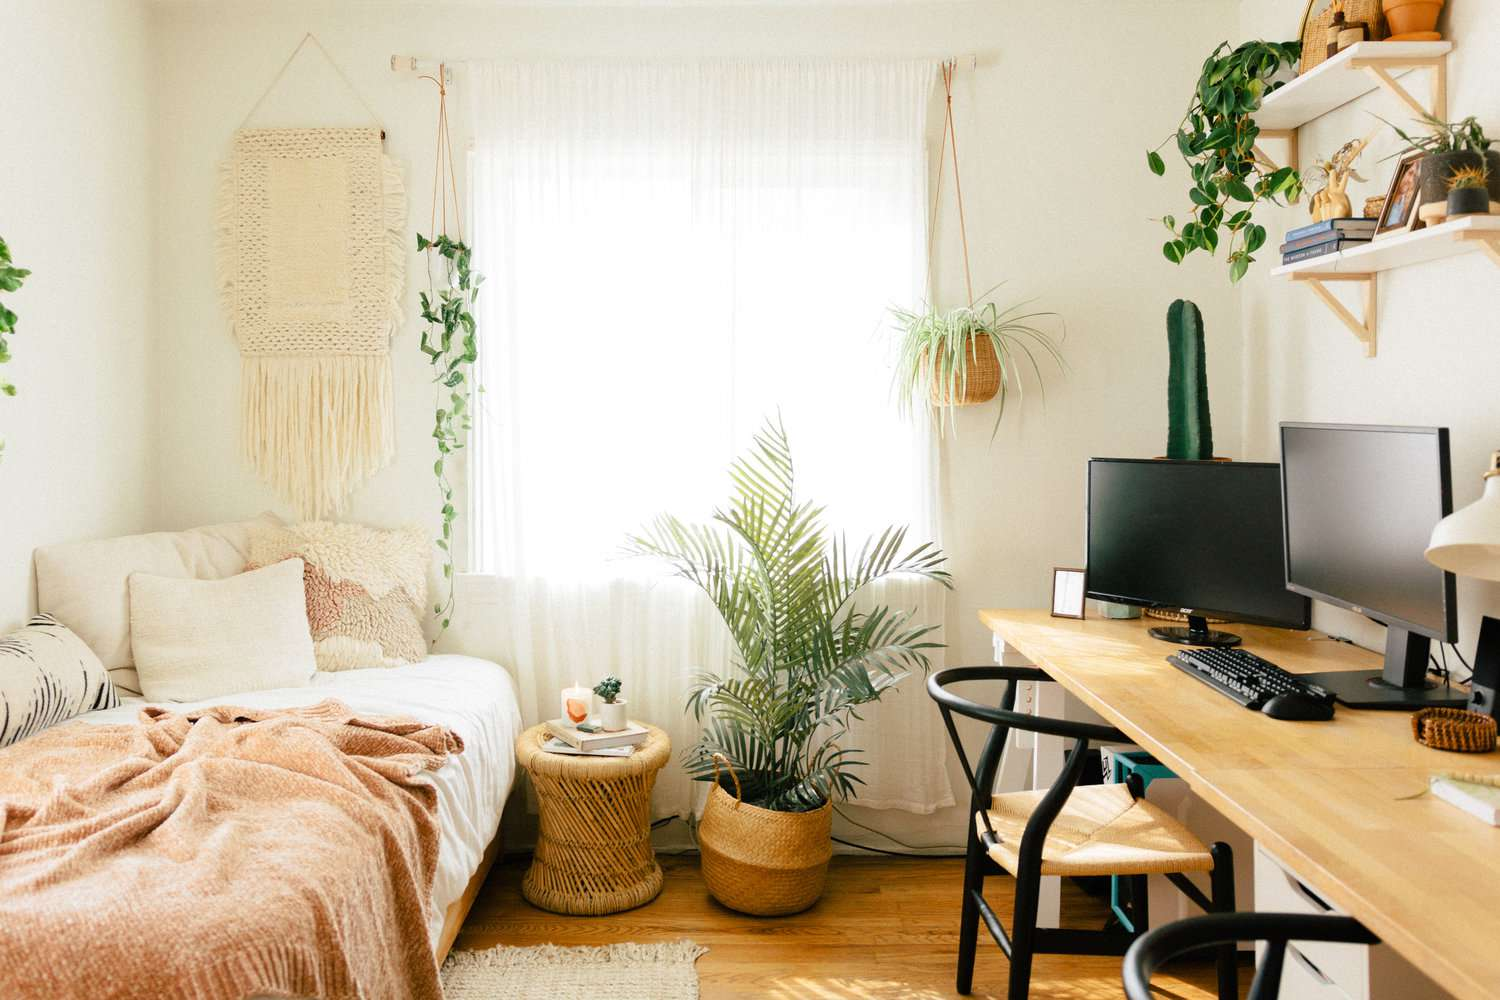 palm and assorted plants in a bright boho bedroom